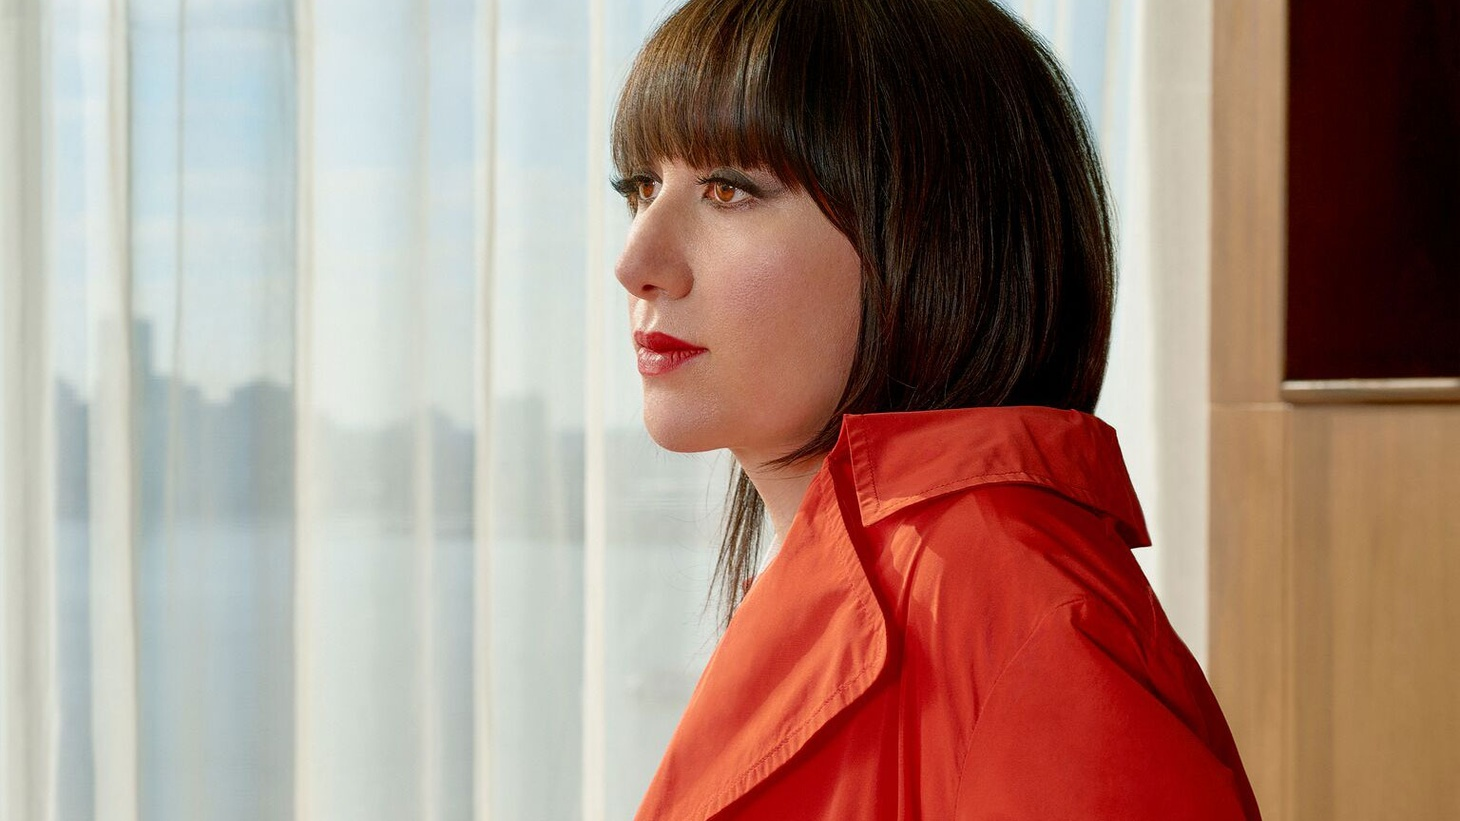 """Teaming up with the Kenzo fashion line, Karen O. creates an original song inspired by the Spring/Summer 2018 collection. """"Yo! My Saint"""" is a stand alone track featuring the guest vocals of the supremely talented Michael Kiwanuka."""